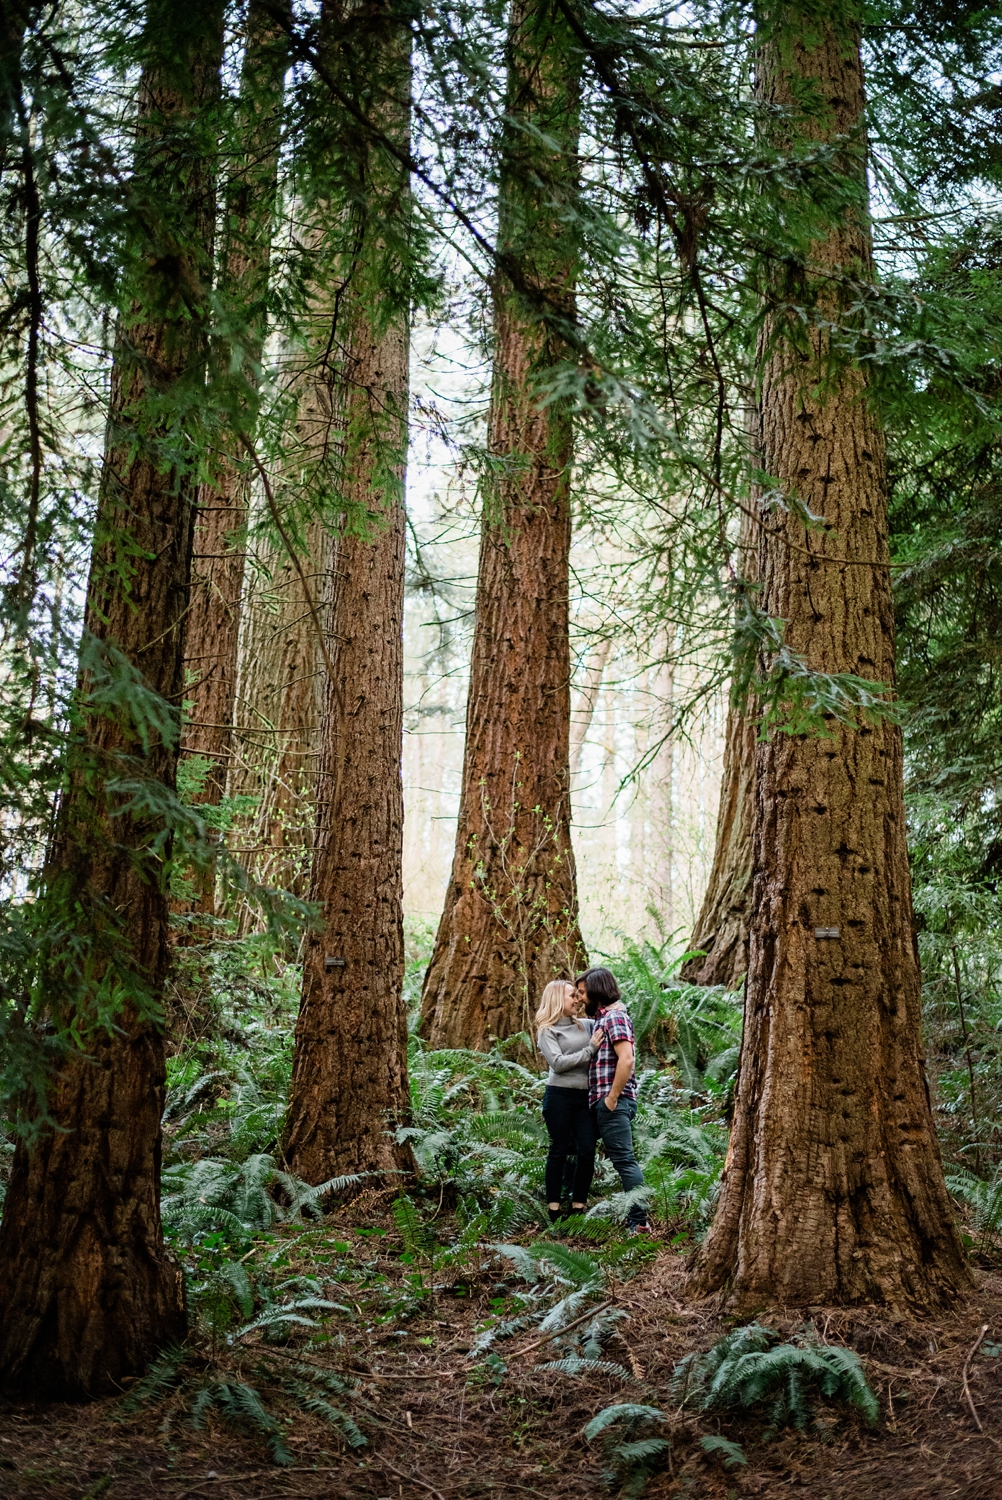 washington-park-portland-engagement-photos-hoyt-arboretum-shelley-marie-photo-216_cr.jpg